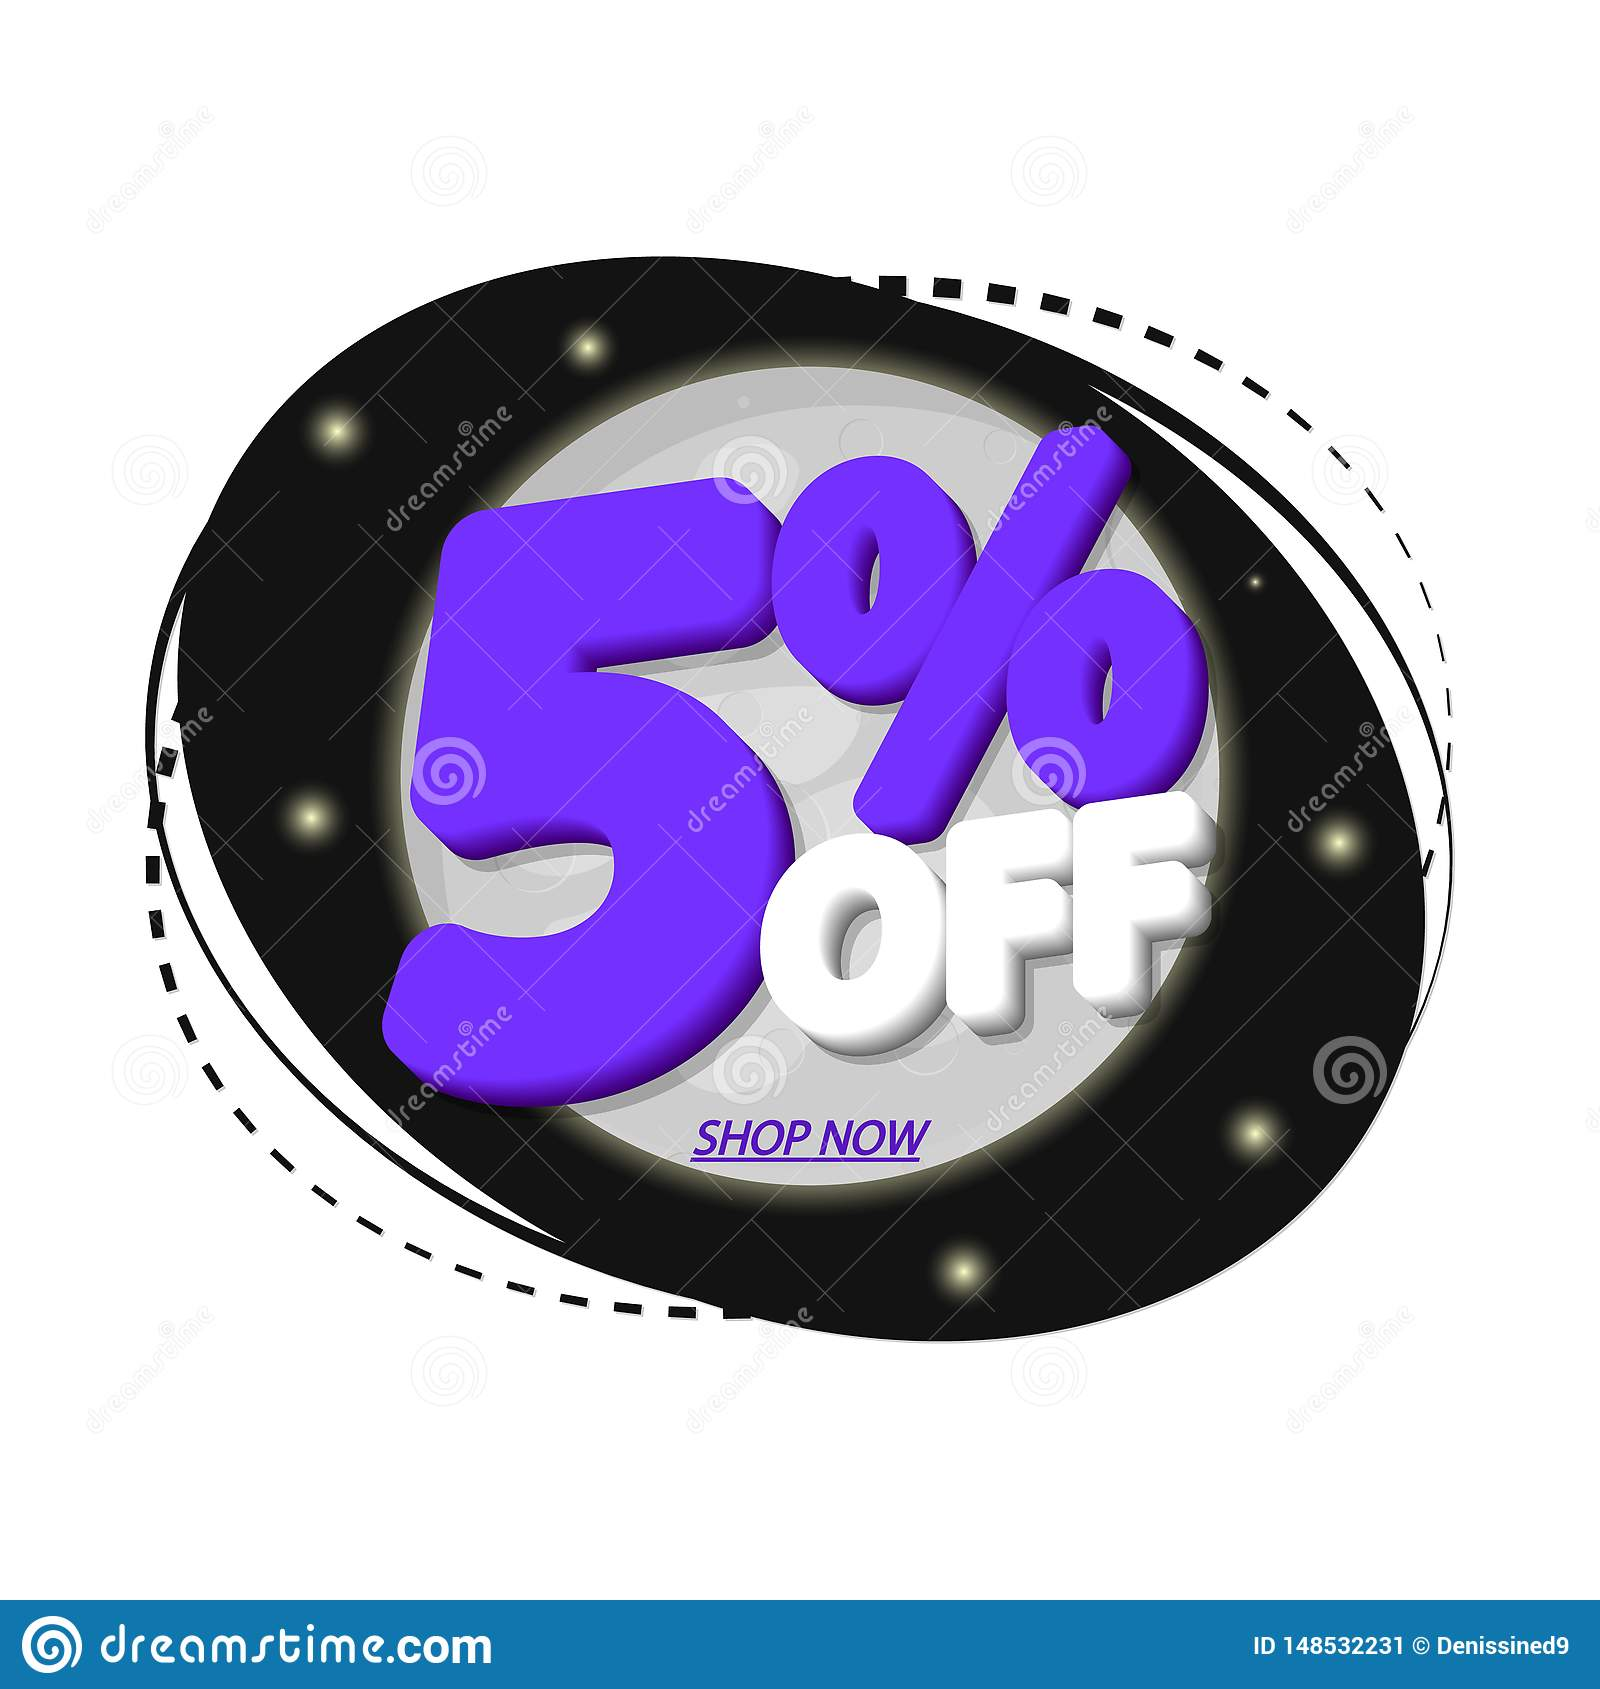 Sale 5  off, discount banner design template, extra promo tag, vector illustration